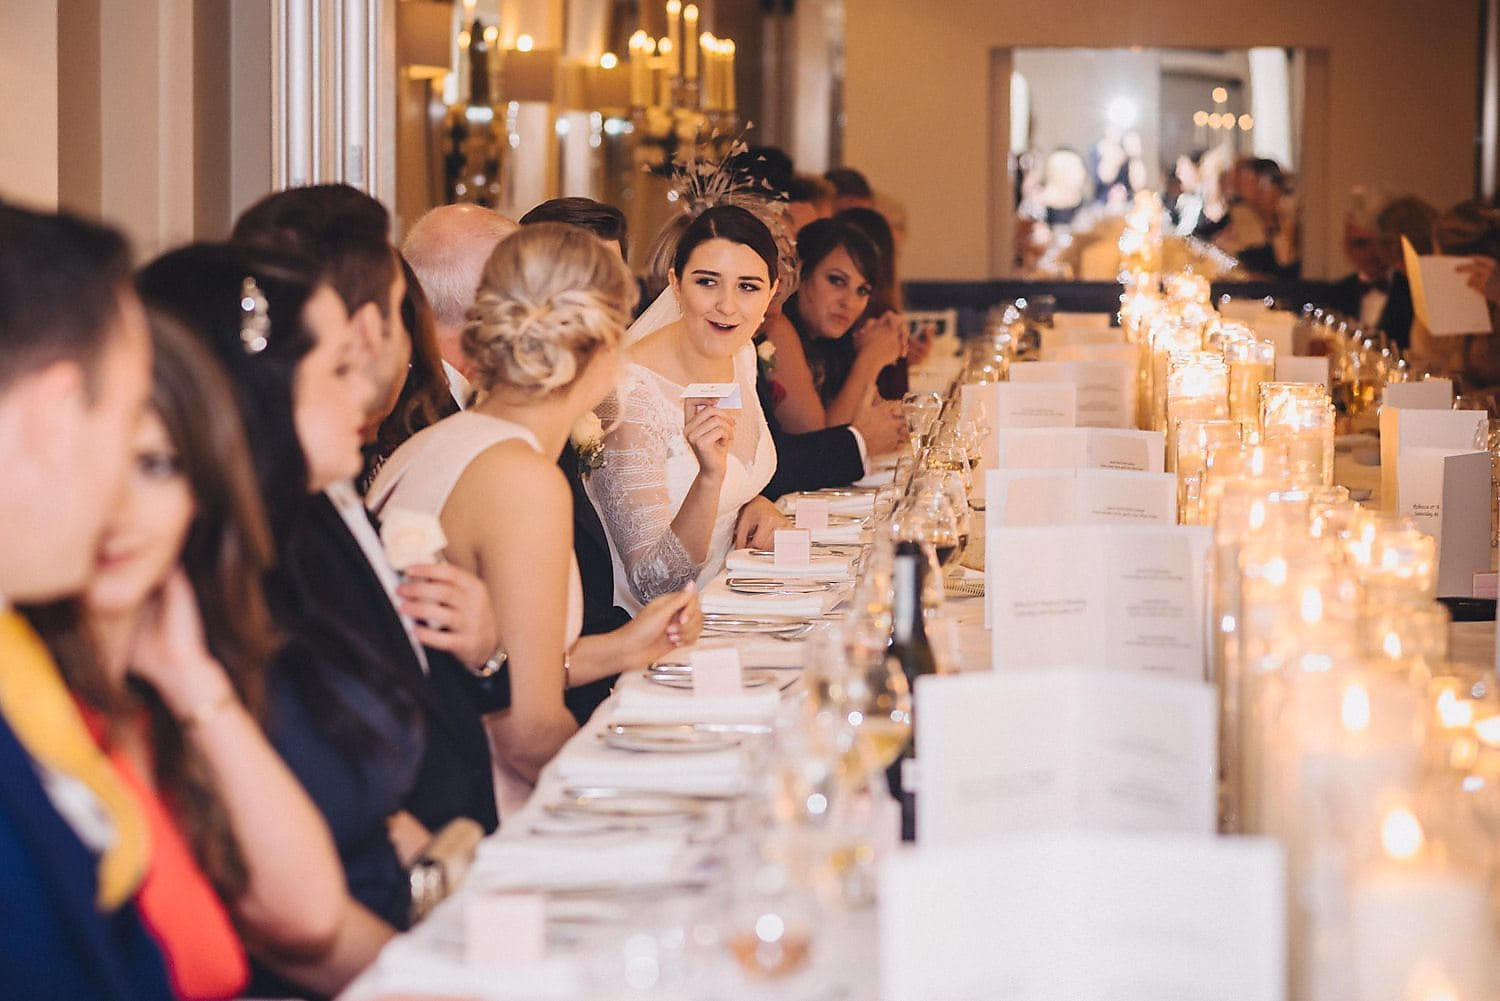 Guests sit for wedding breakfast at chic Bingham Hotel wedding